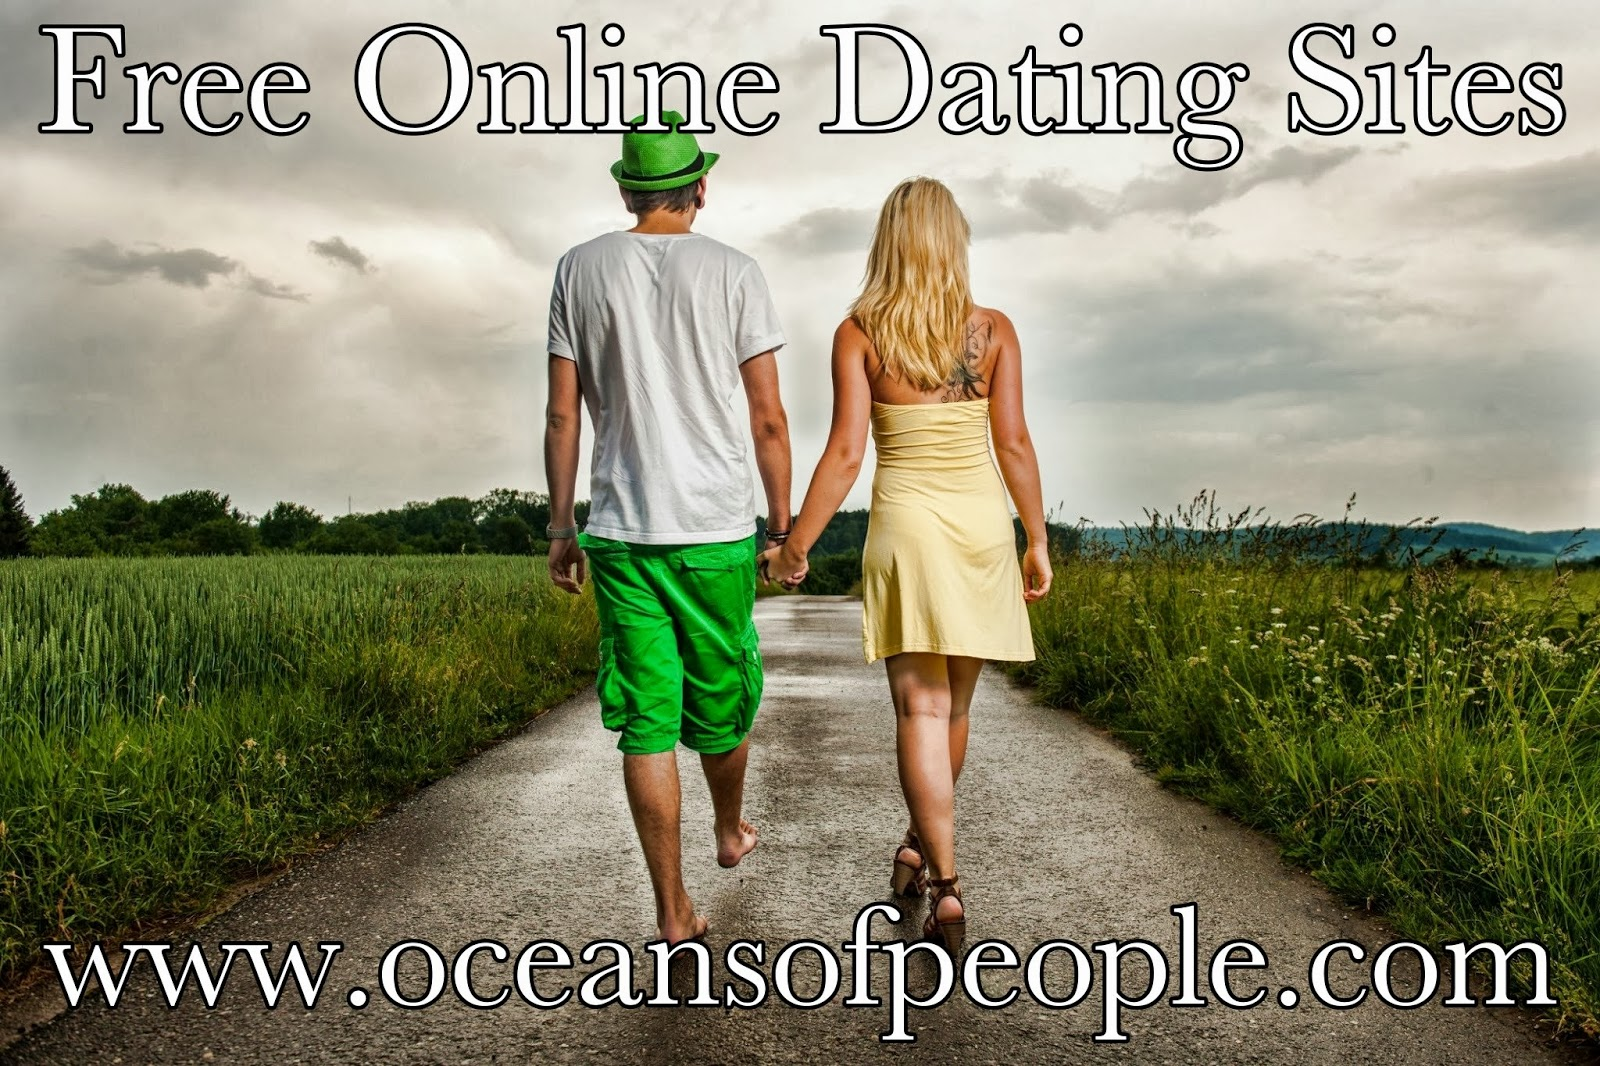 Cleveland online dating sites